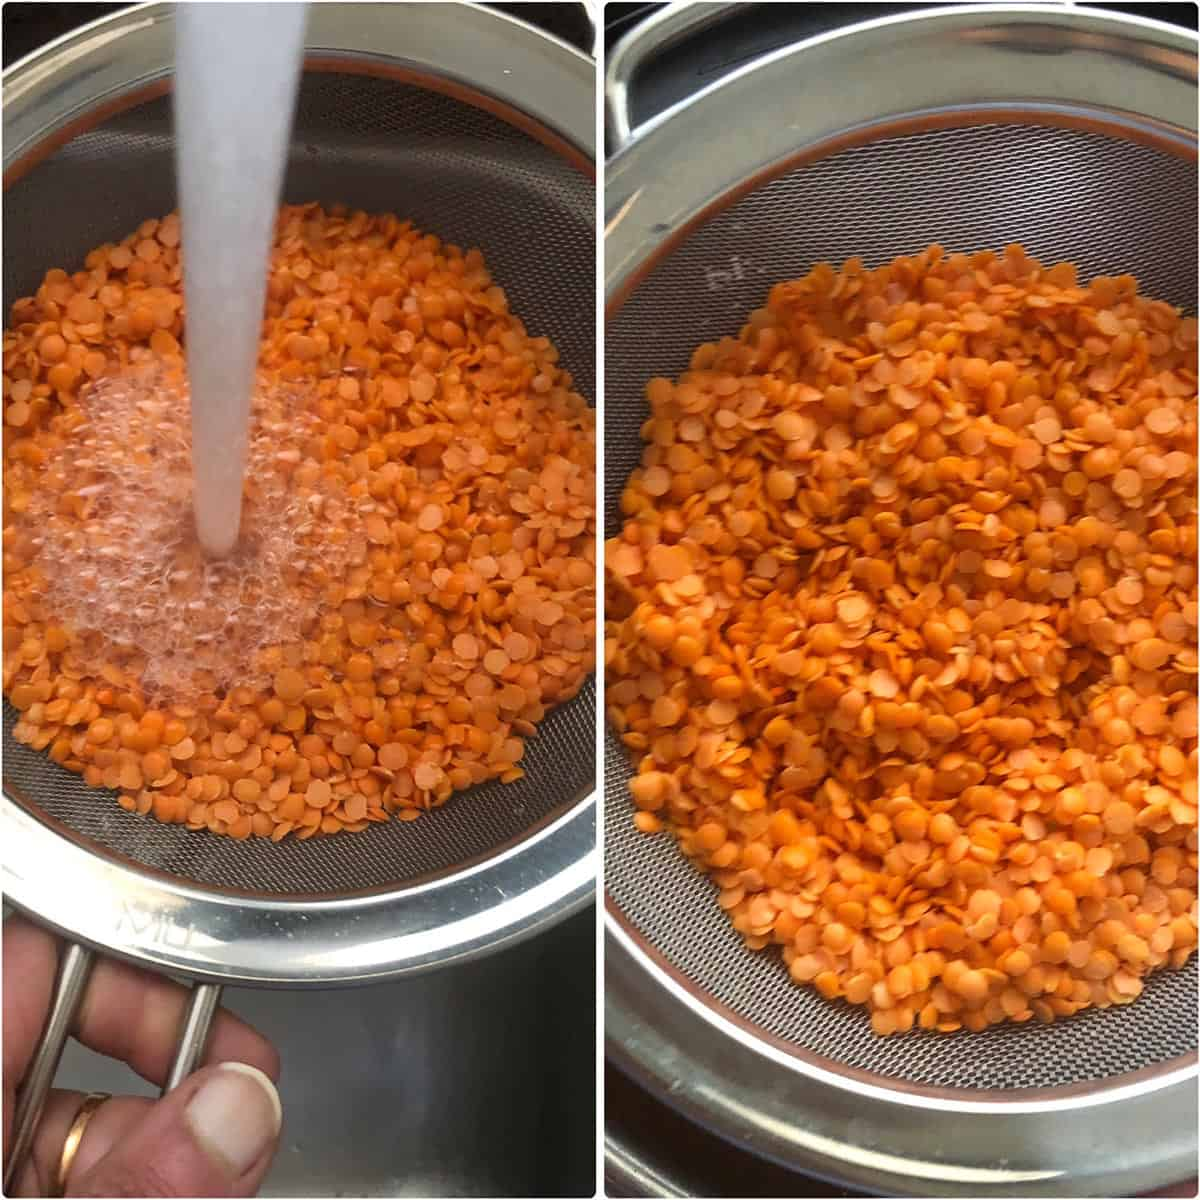 Washing red lentils in a sieve